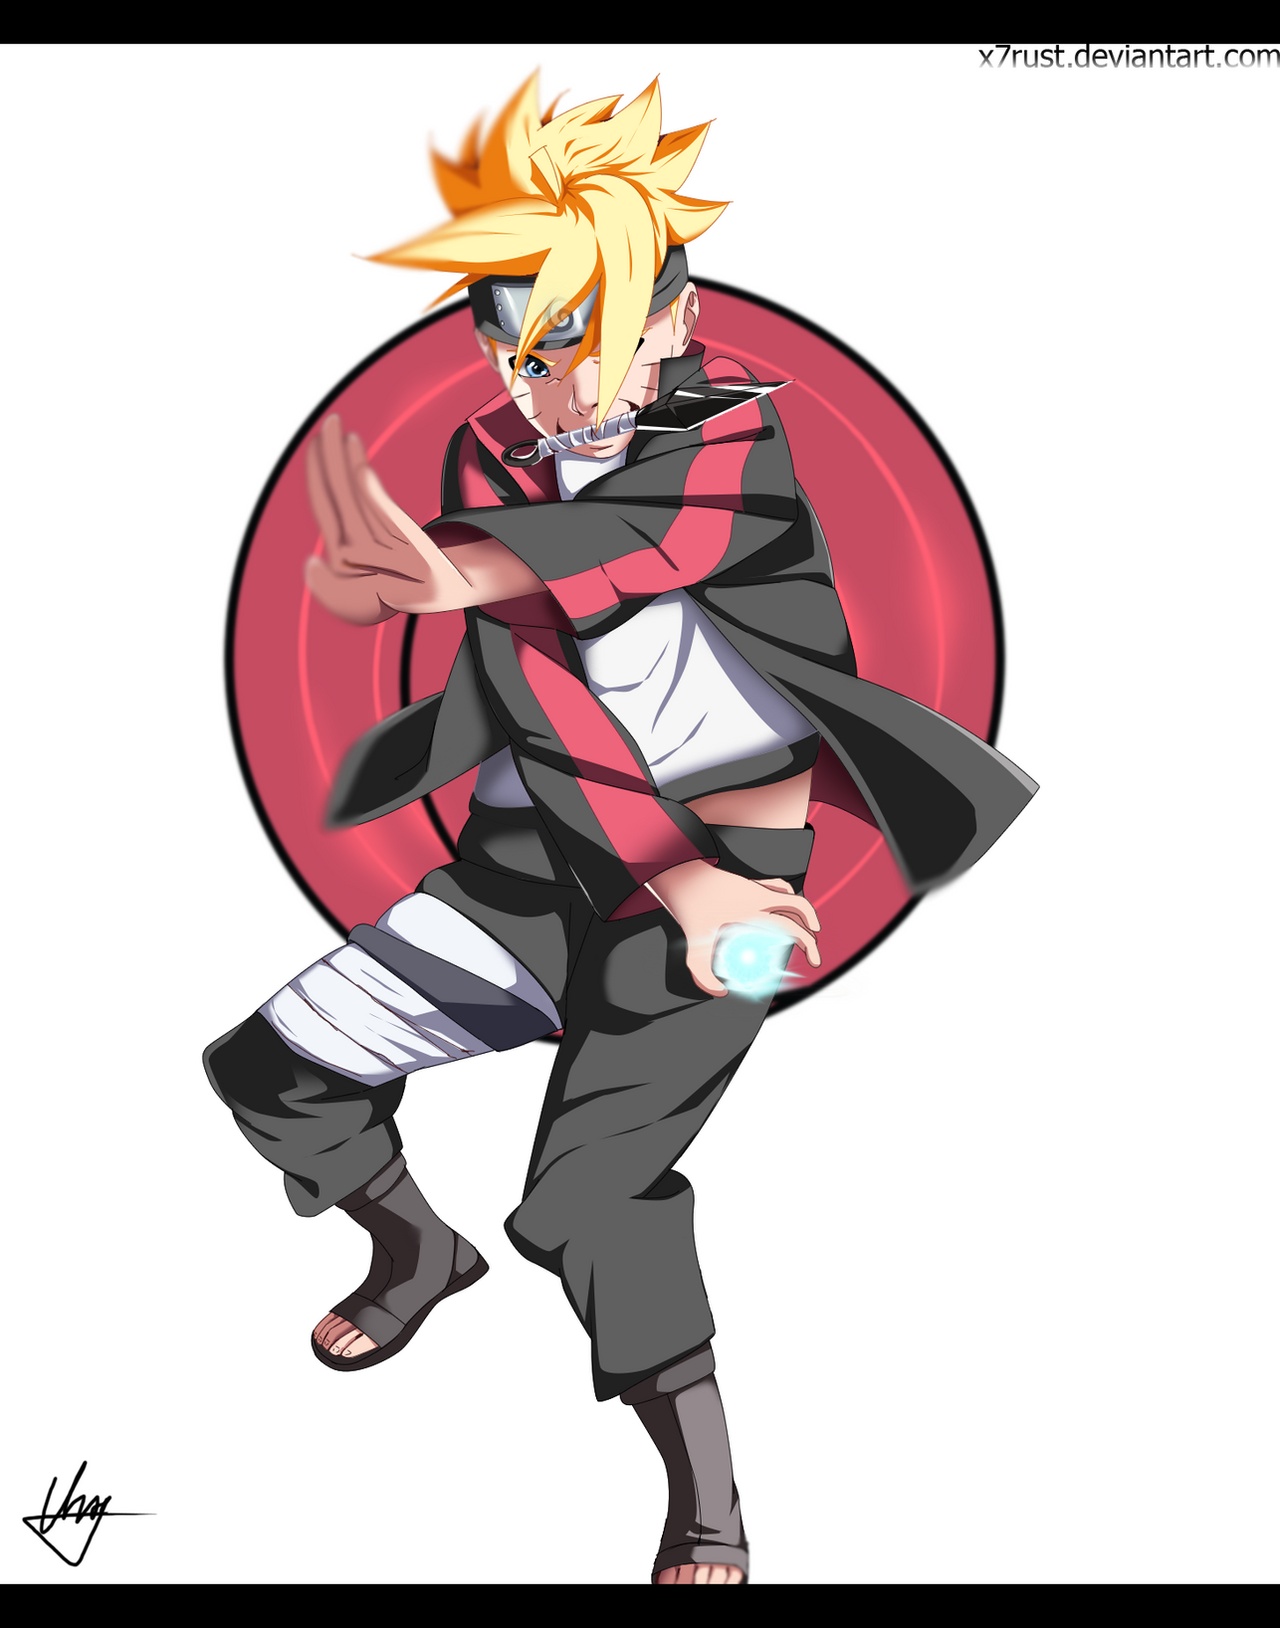 Uzumaki Boruto By X7rust On Deviantart